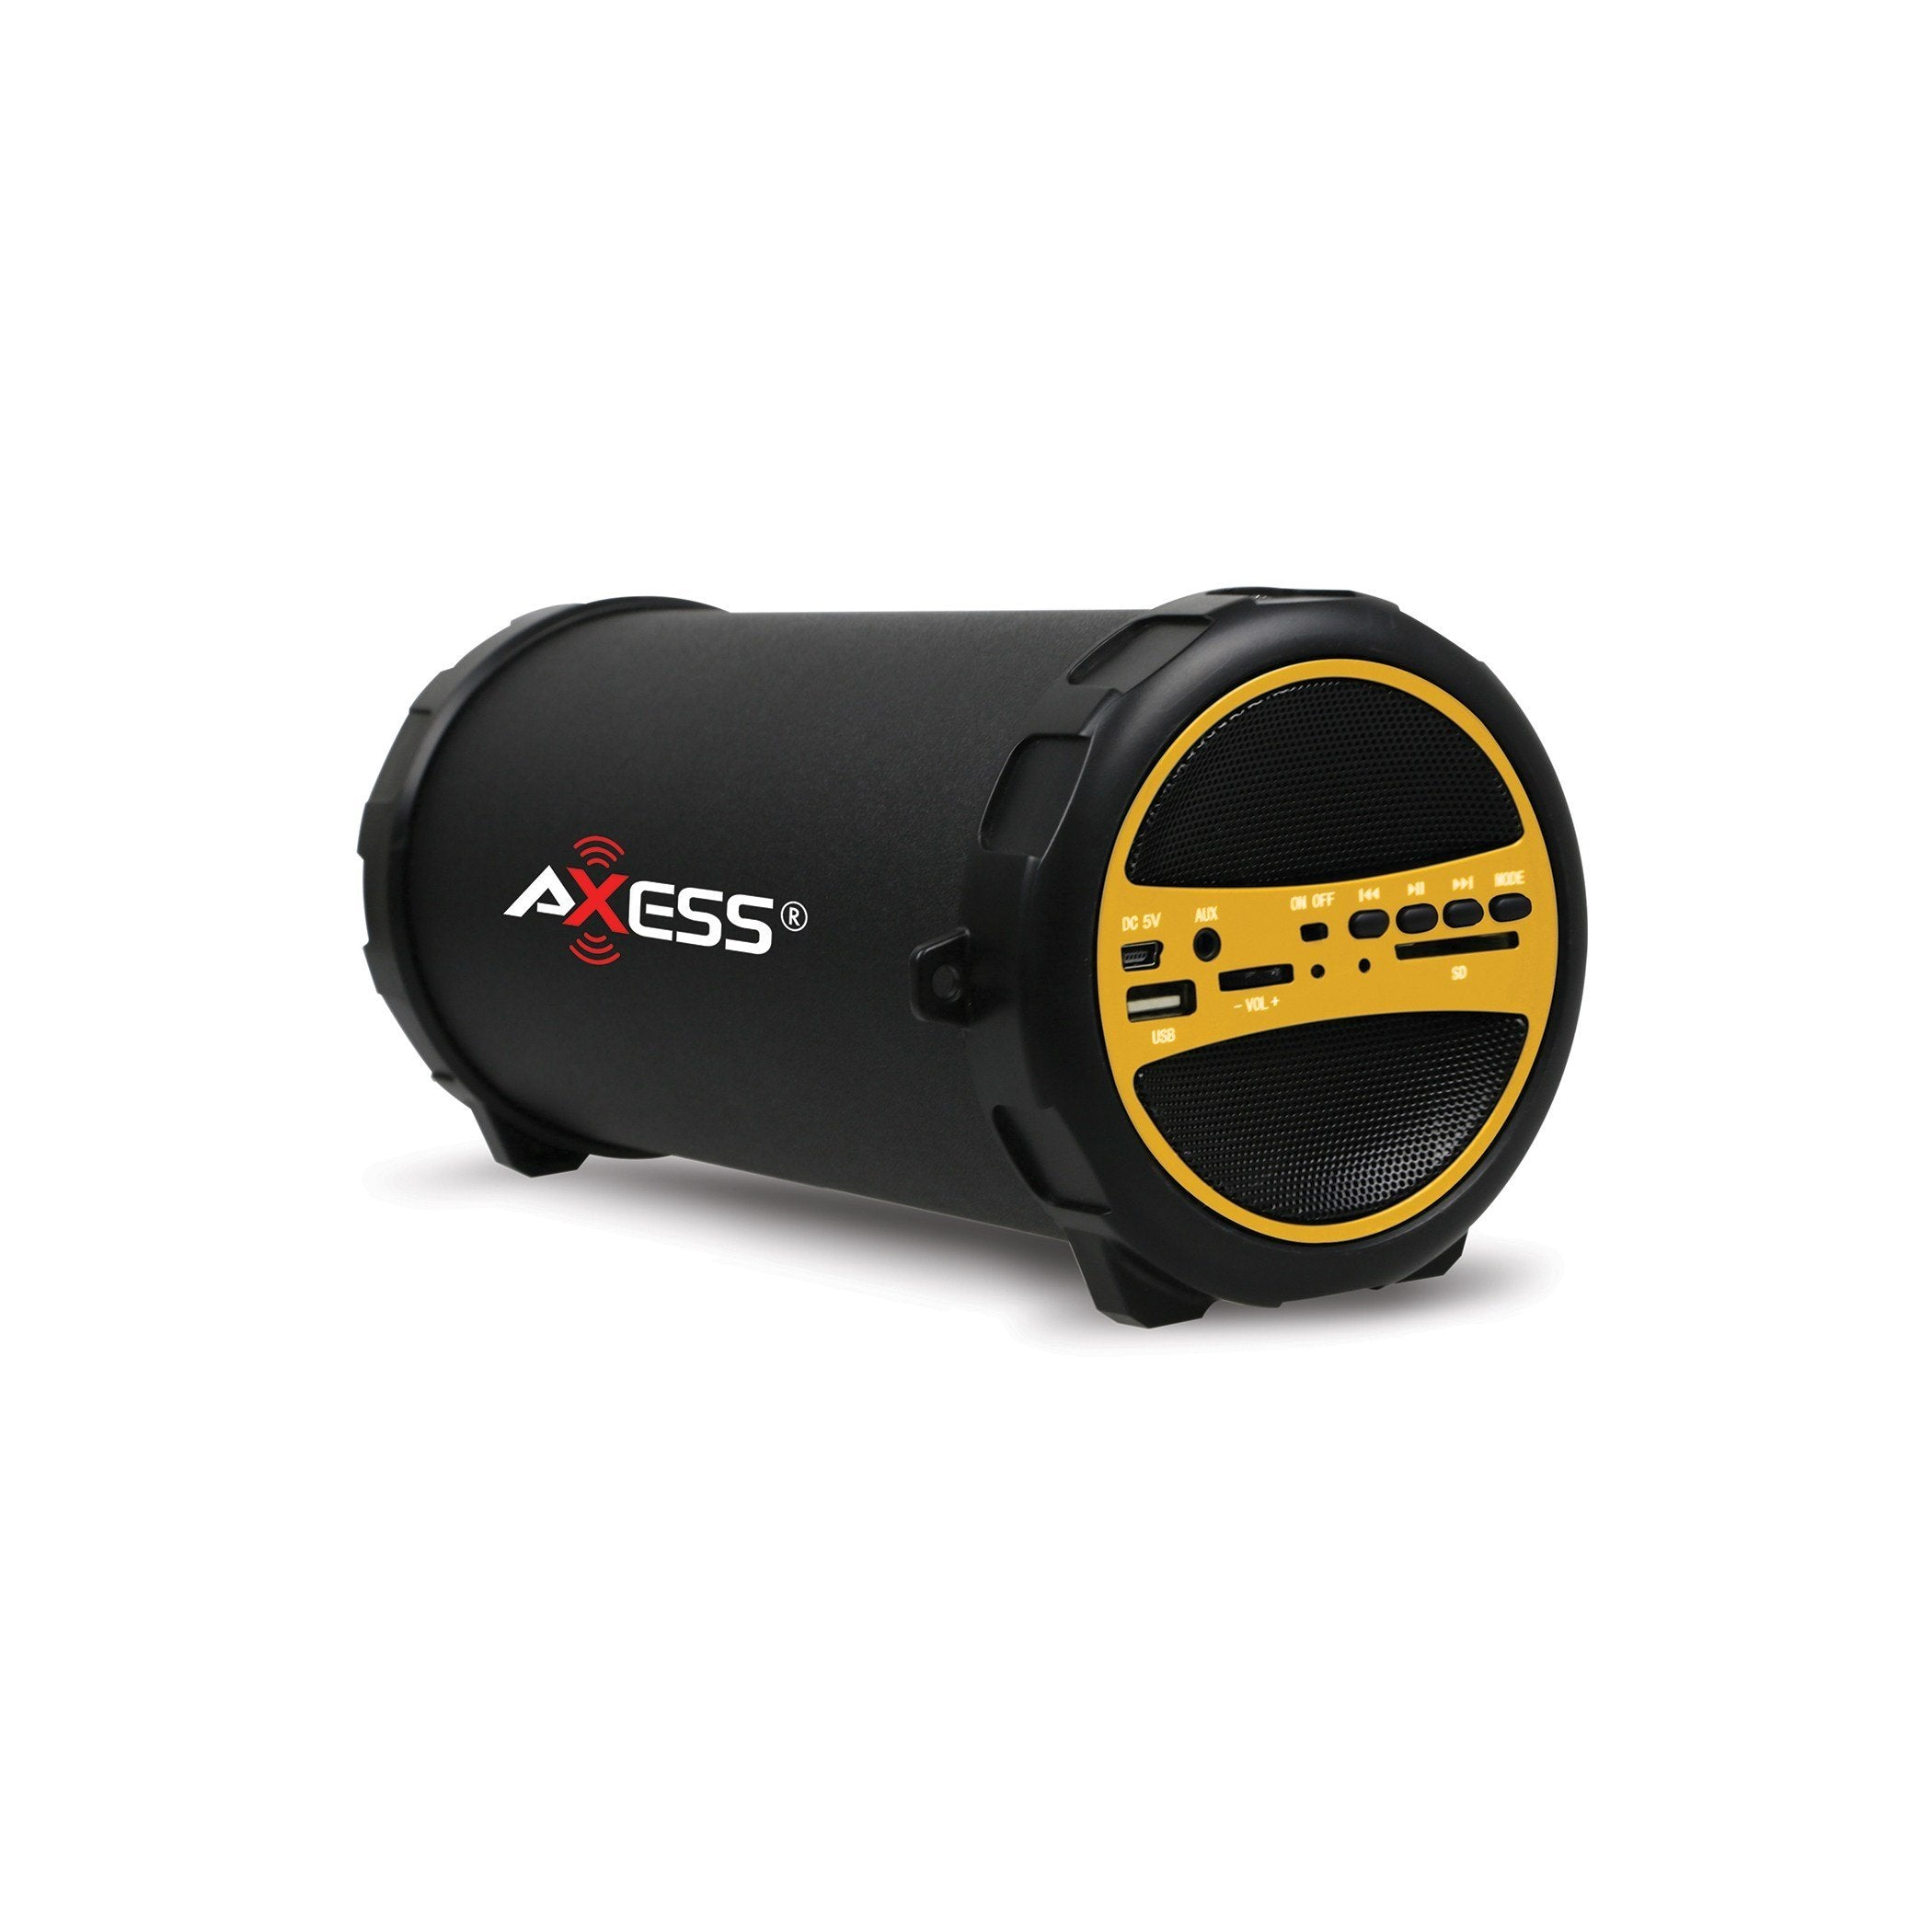 "AXESS  Portable Bluetooth Indoor/Outdoor 2.1 Hi-Fi Cylinder Loud Speaker with Built-In 3"" Sub and SD Card, USB, AUX Inputs in Yellow (SPBT1031YL)"